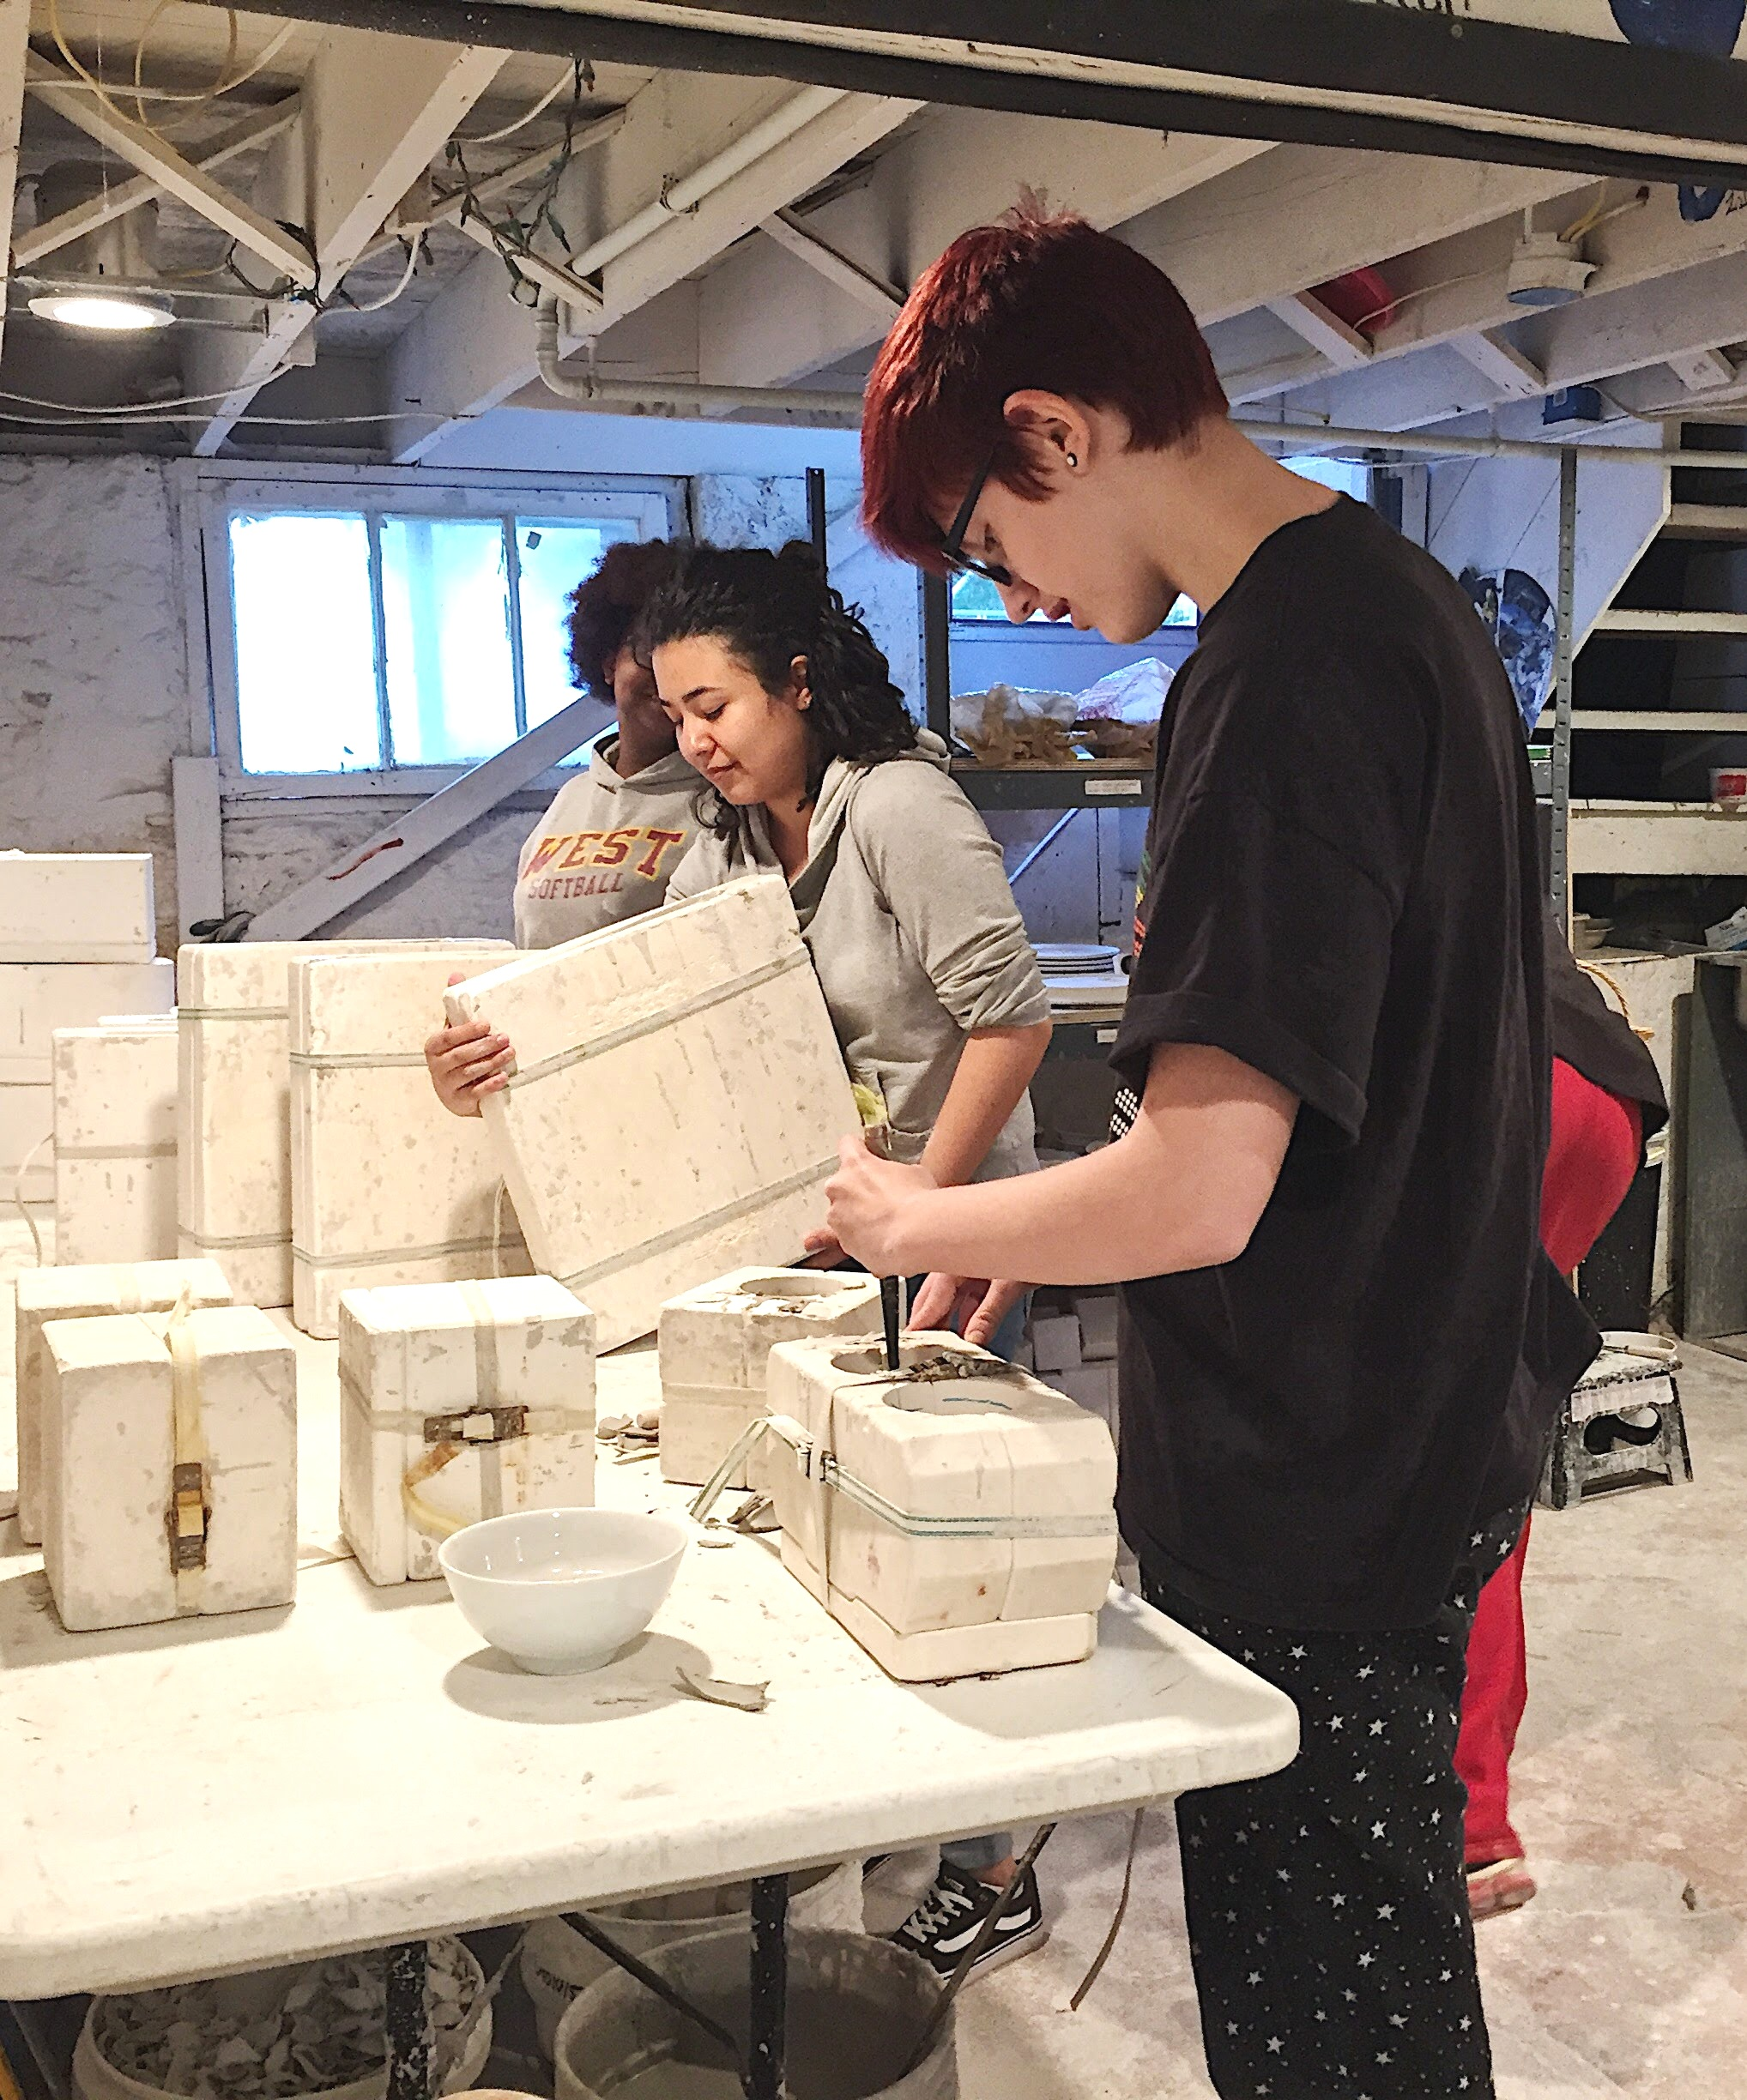 PotteryWorks - A community of hope in Wichita, KS hiring teenagers to discover work, creativity, and accountability through the medium of ceramics since 2015.